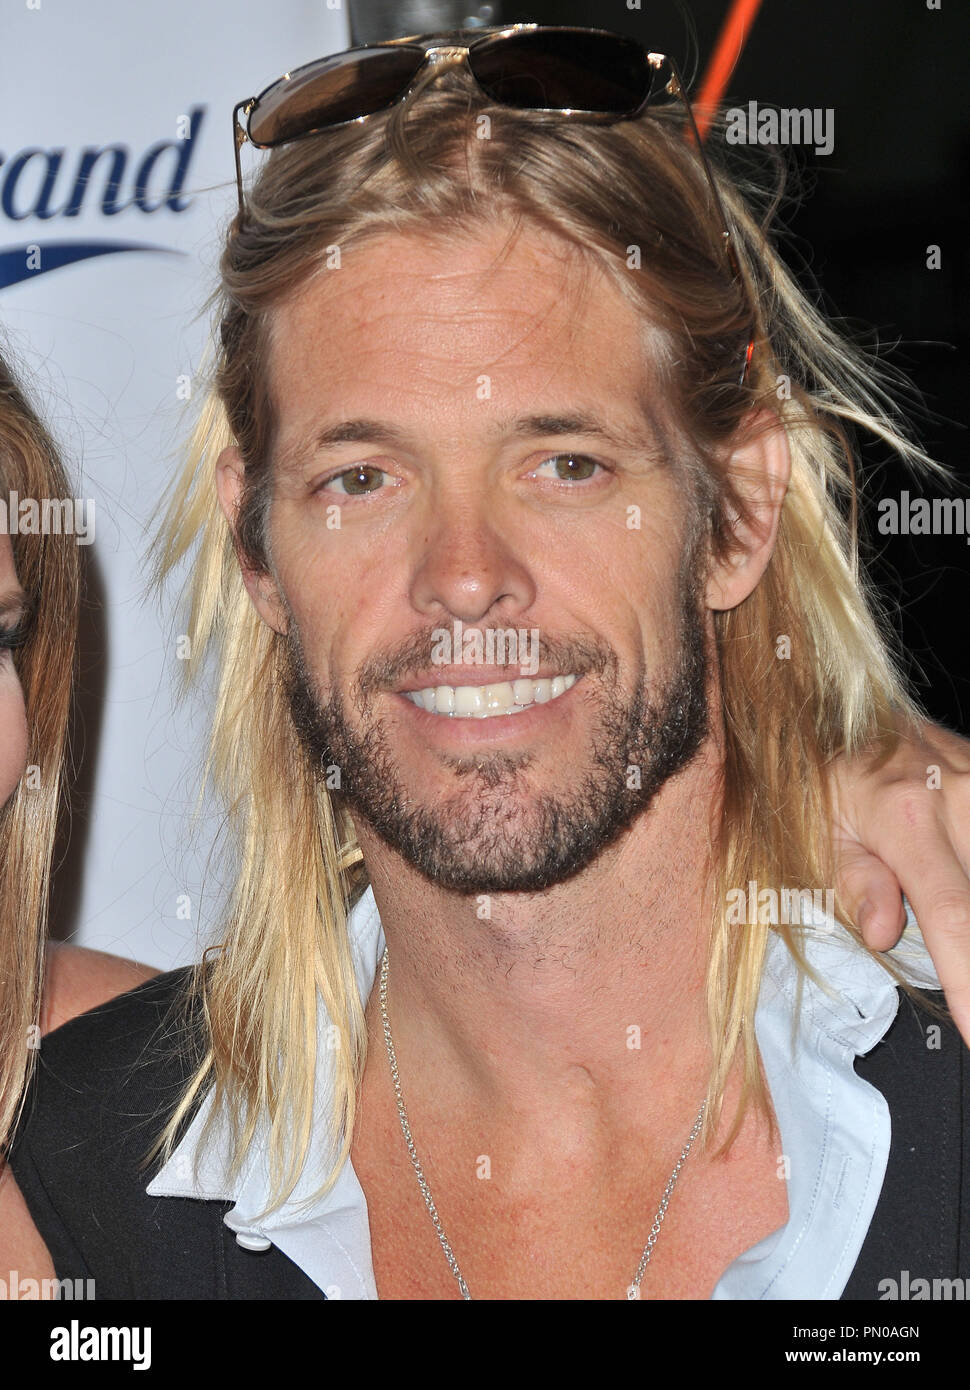 Taylor Hawkins Stock Photos Amp Taylor Hawkins Stock Images